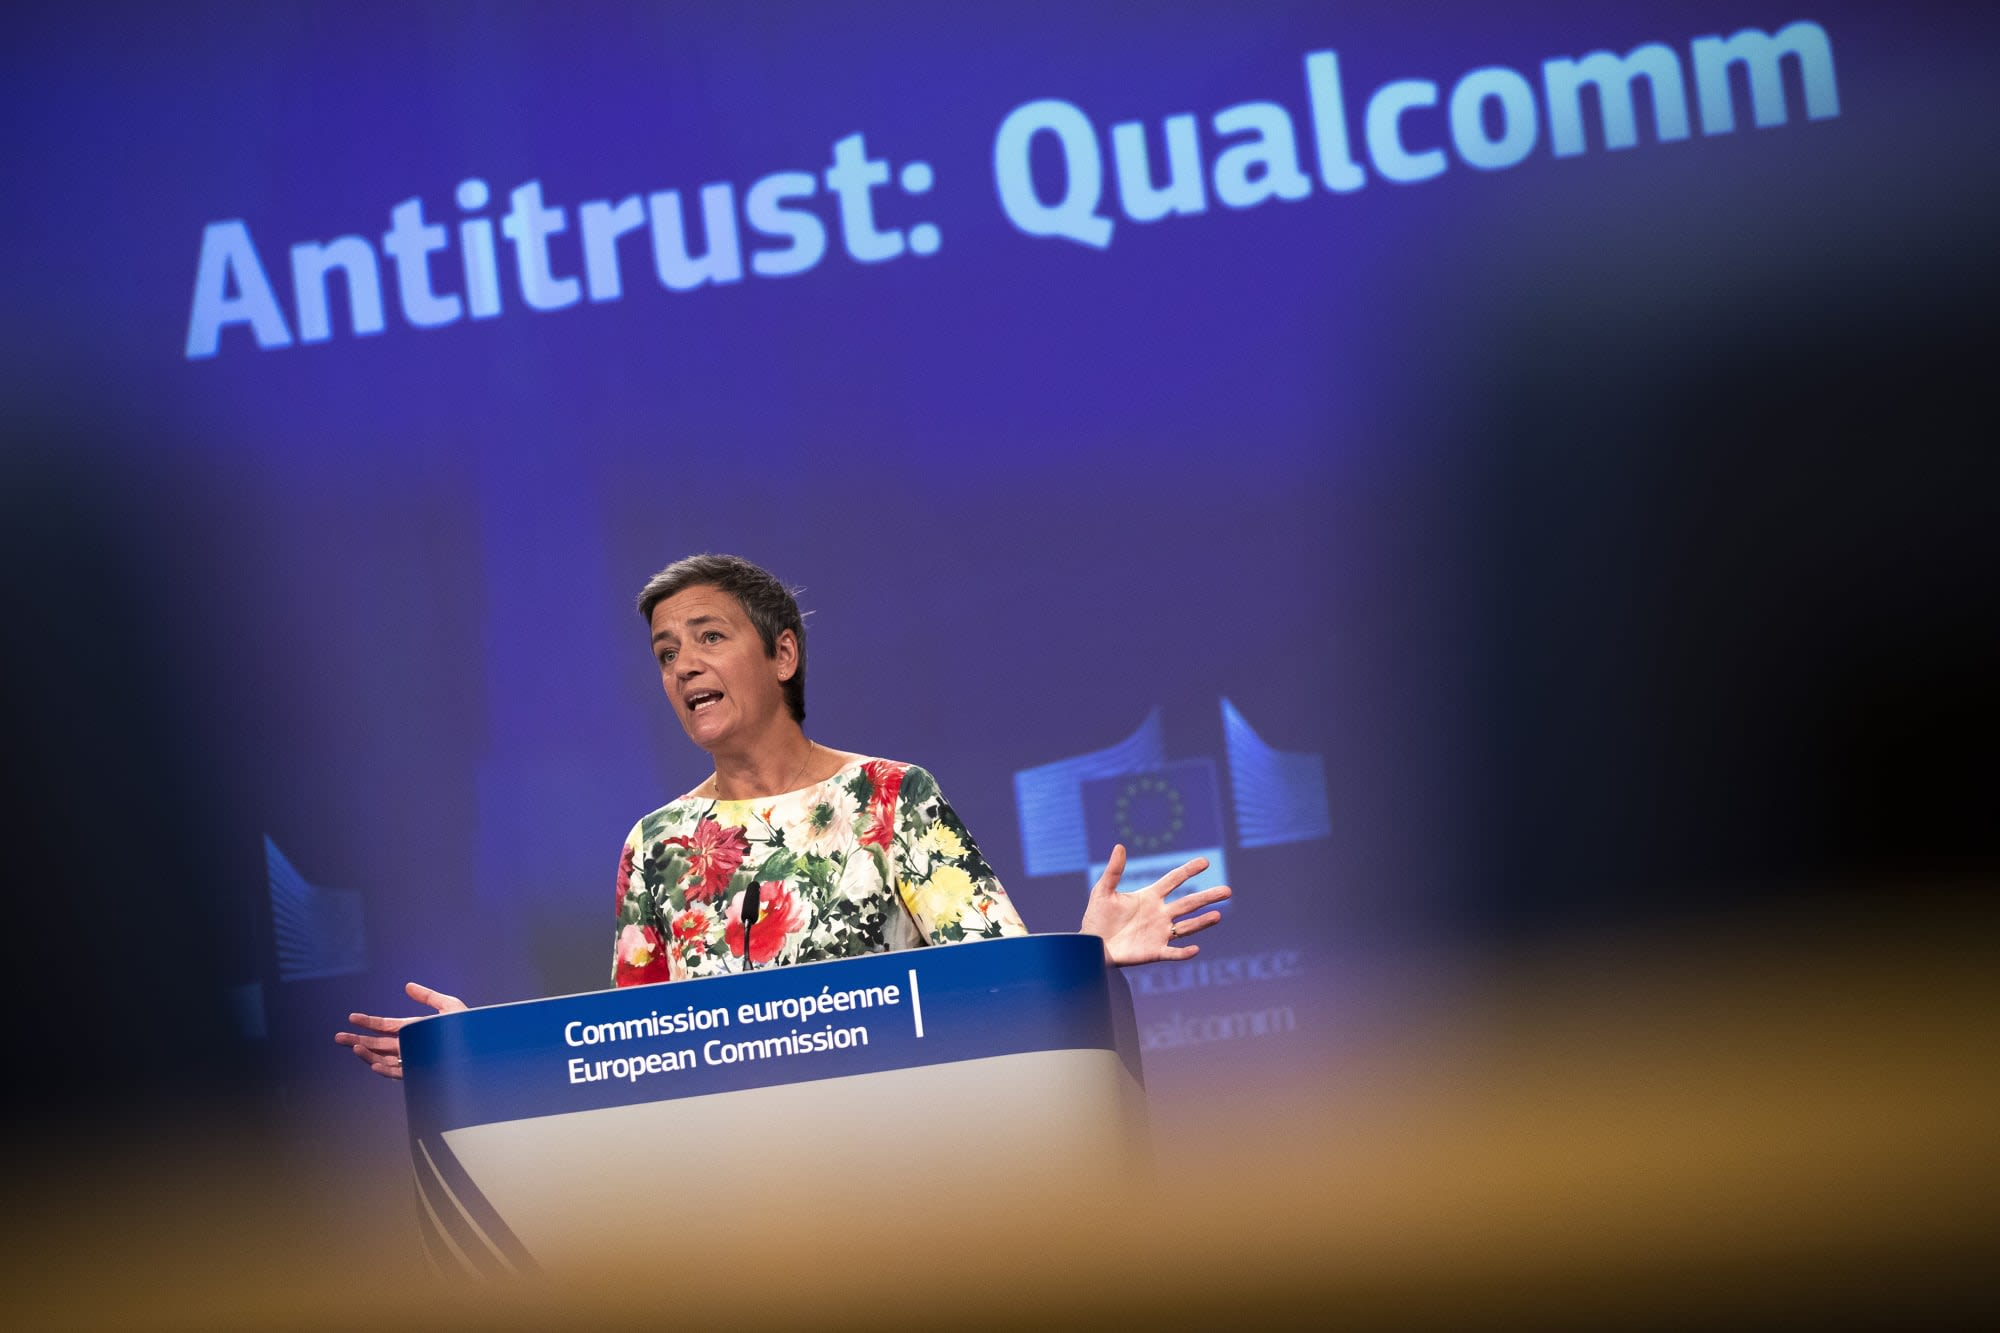 Qualcomm fined €242 million in European antitrust case